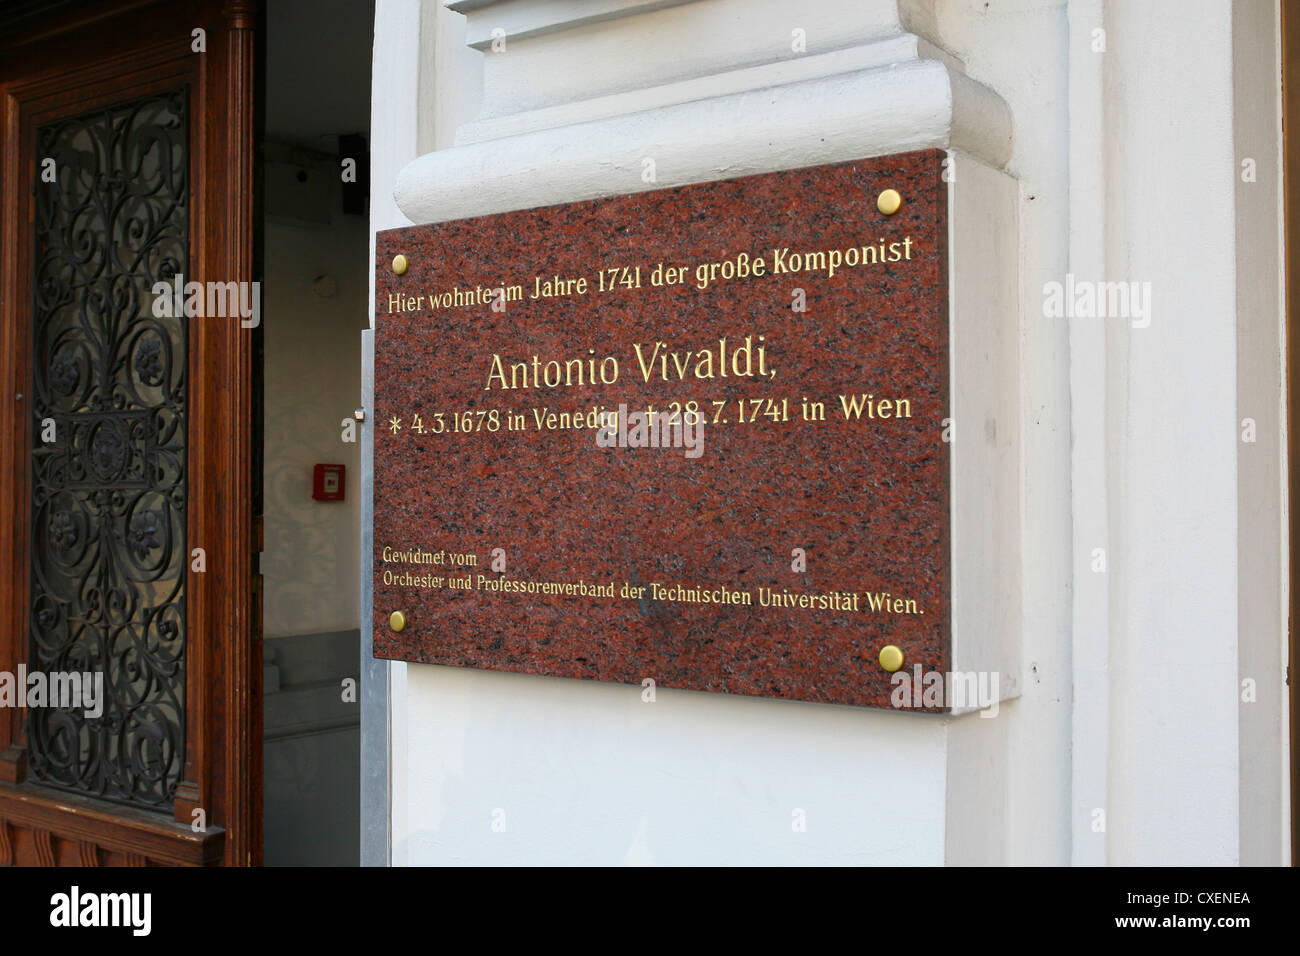 Memorial plate for the Italian composer Antonio Vivaldi, who died in Vienna on the 28.07.1741 - Stock Image